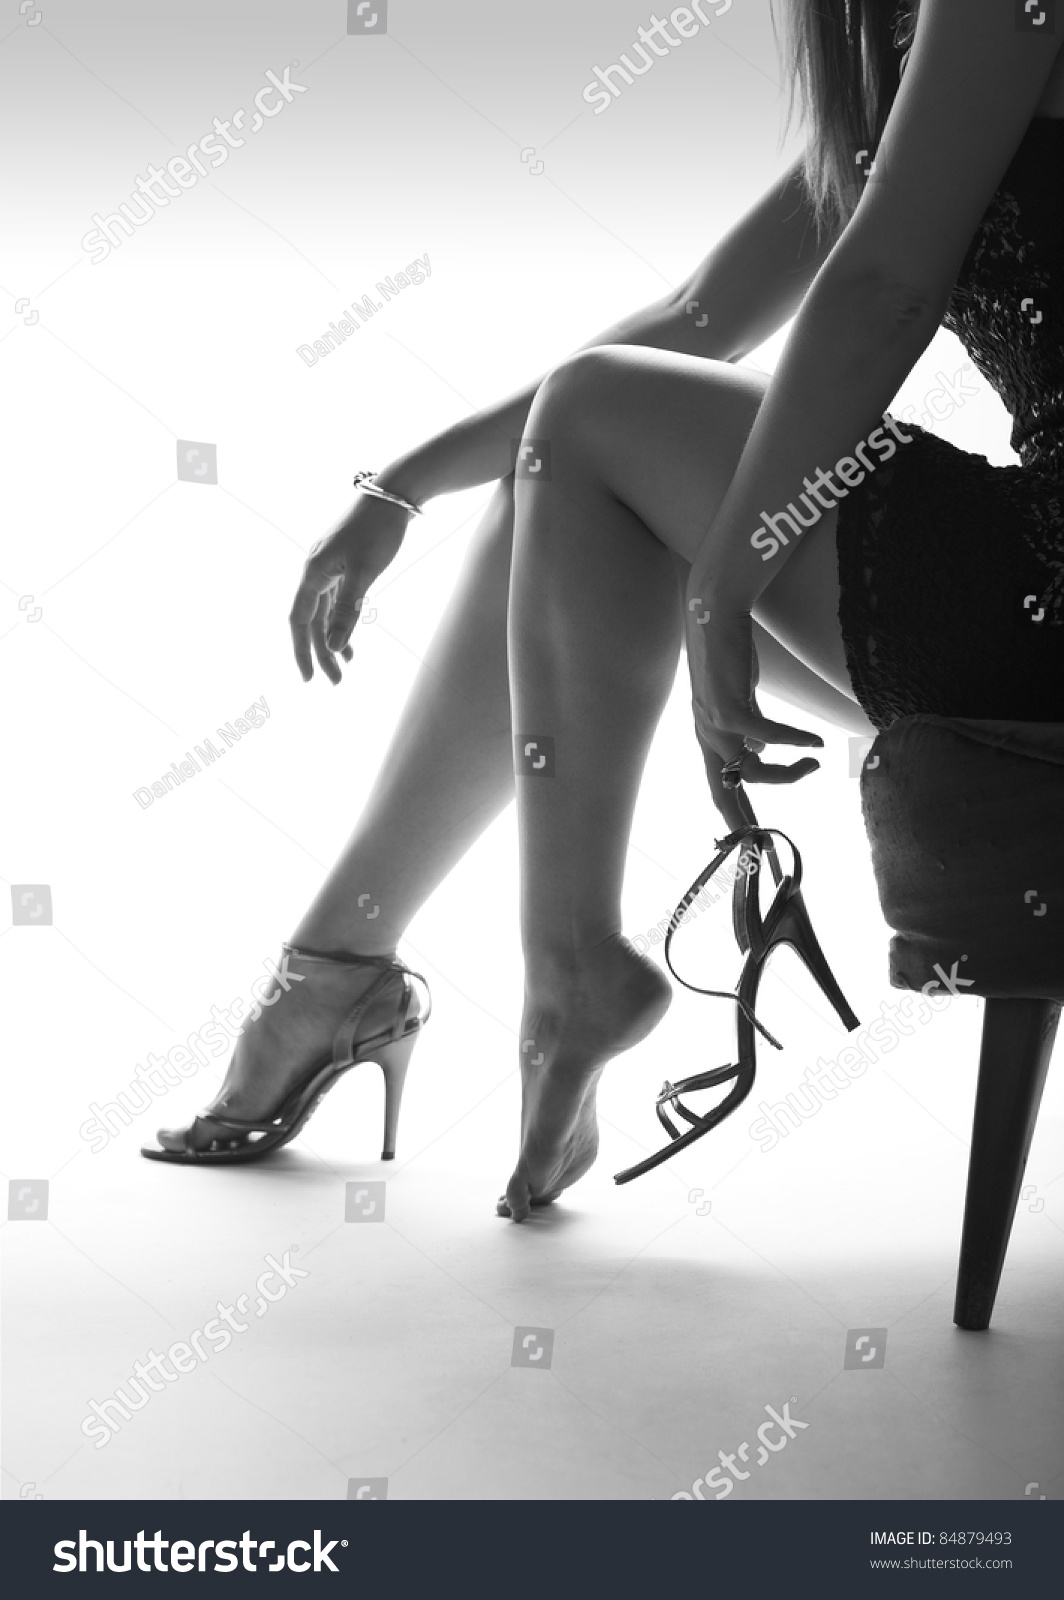 sexy woman legs high heels white stock photo (download now) 84879493